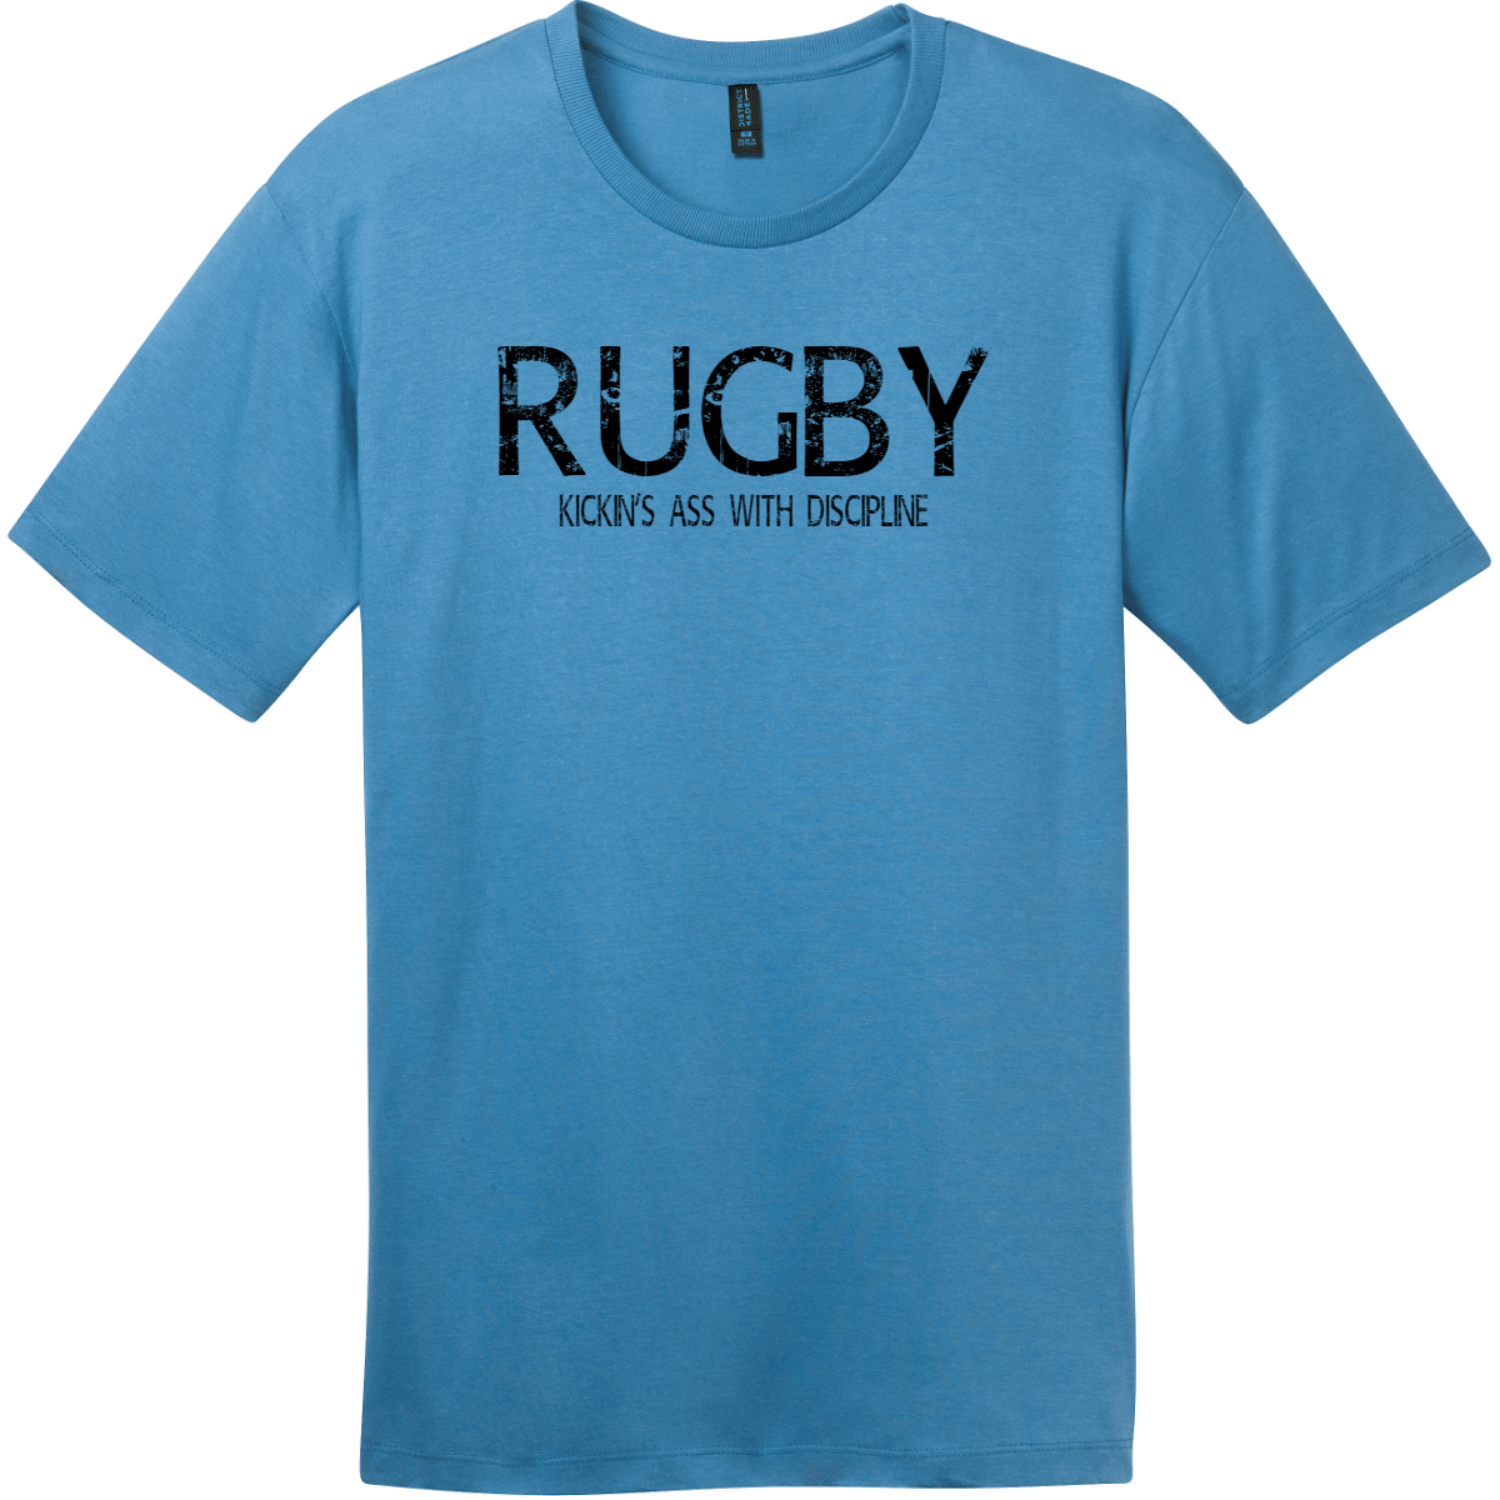 Rugby Kickin Ass With Discipline T-Shirt Clean Denim District Perfect Weight Tee DT104